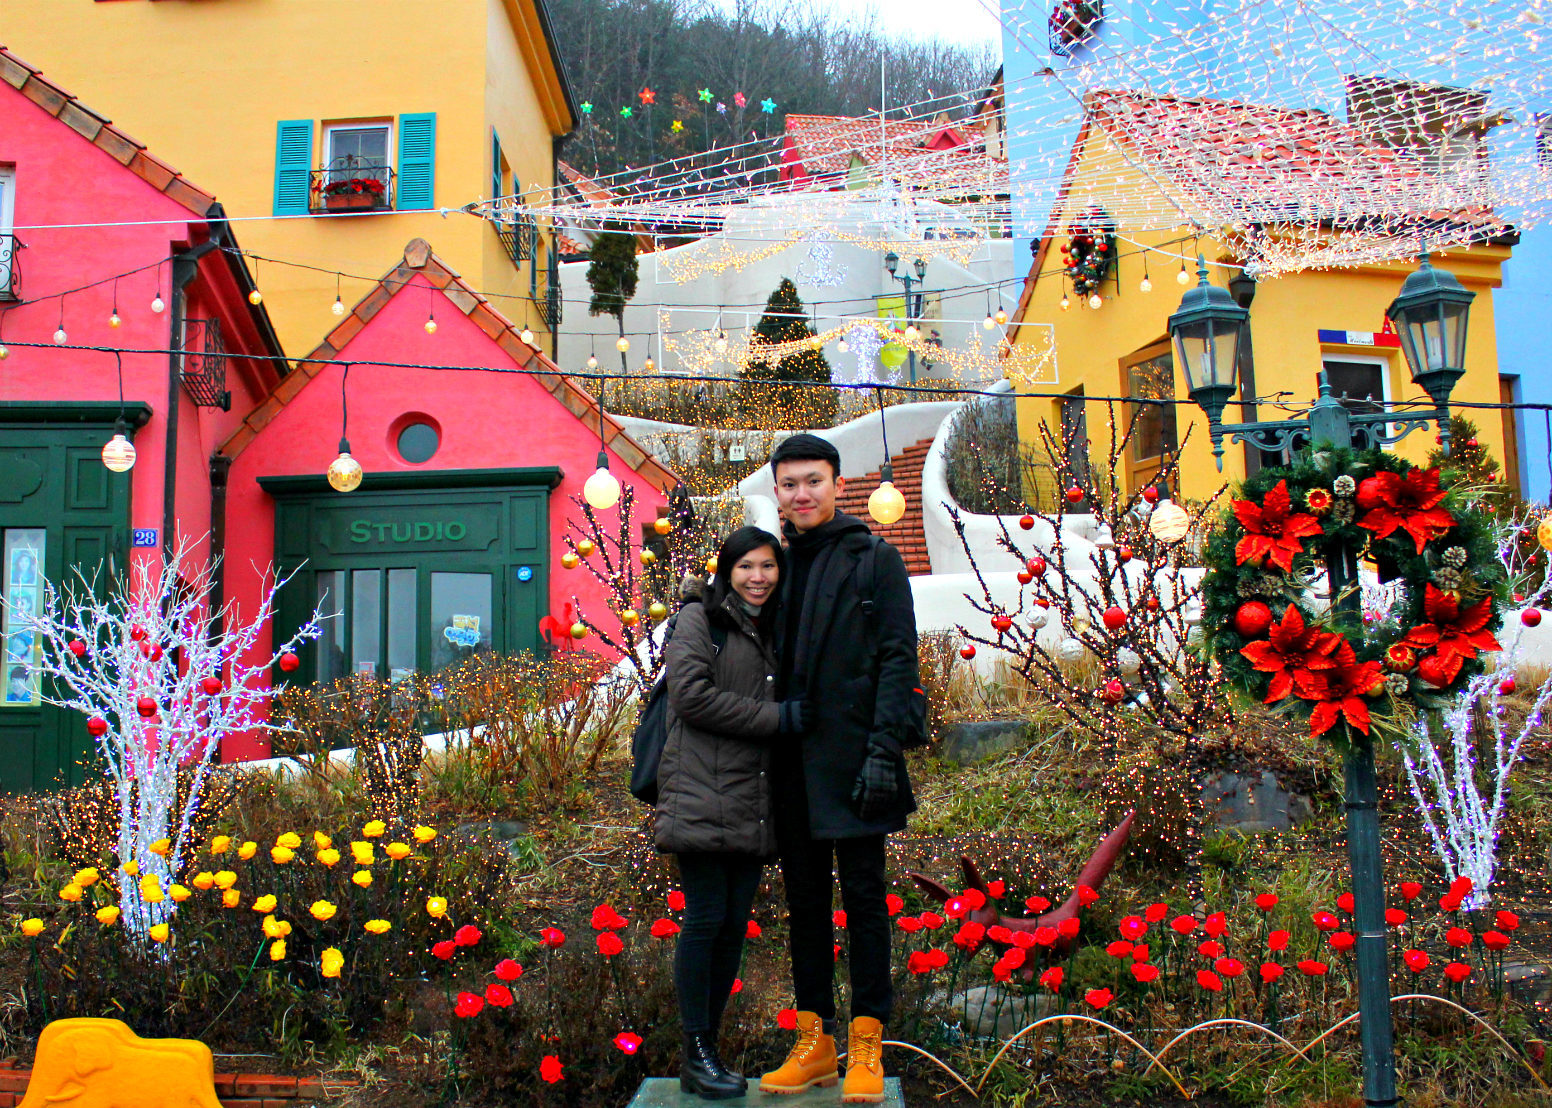 If you are a fan of Korean television shows, movies and K-pop, you will  most likely want to visit filming locations when in Korea. Petite France  was a ... 3938e2e9341